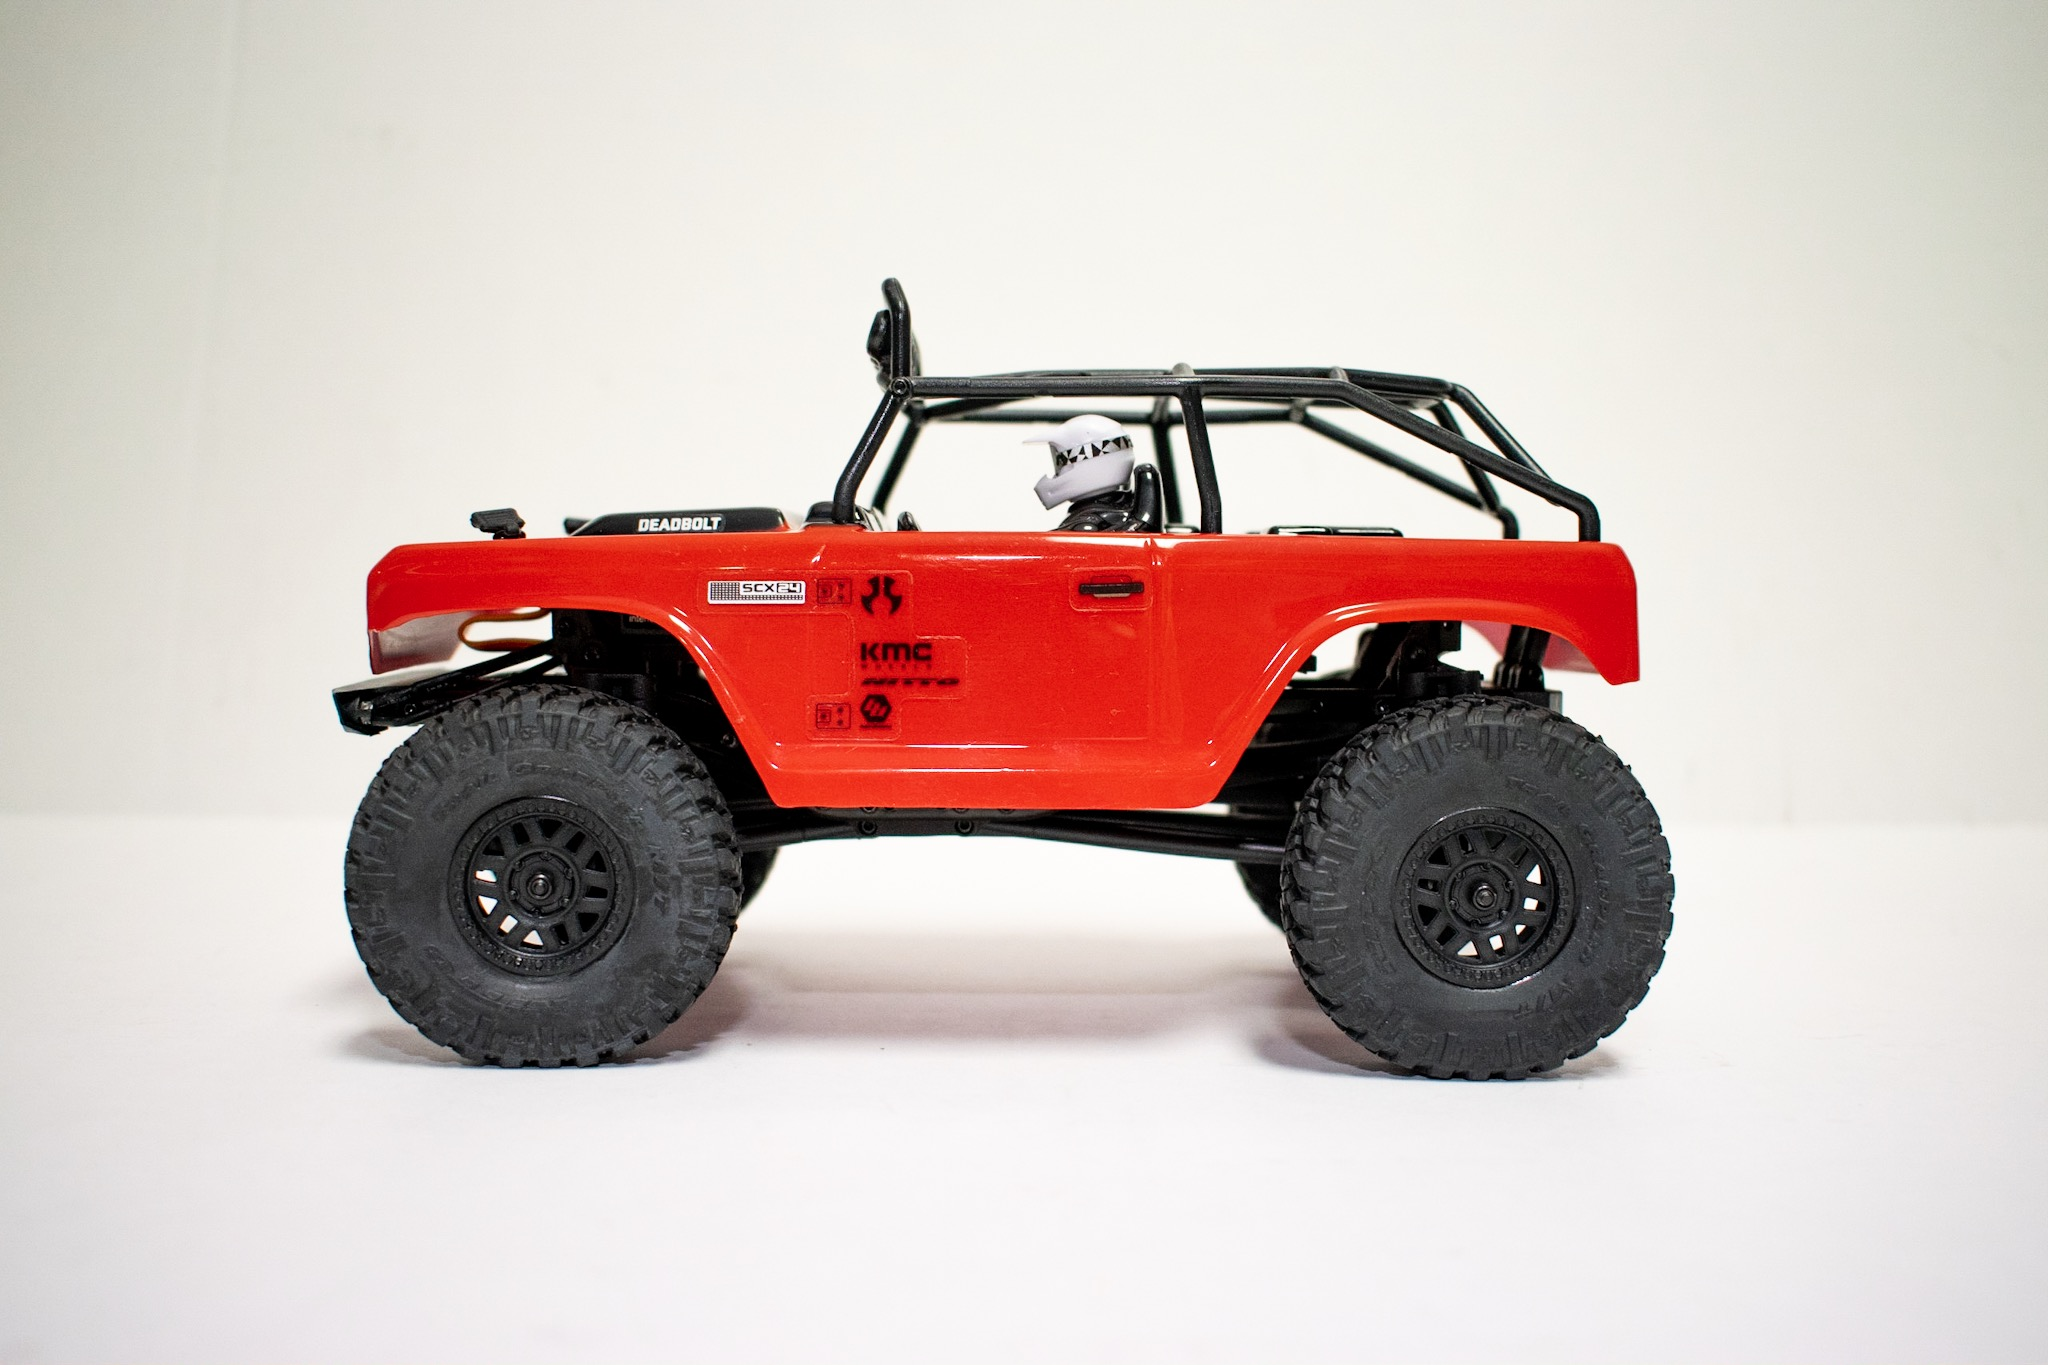 Axial SCX24 Deadbolt - Side